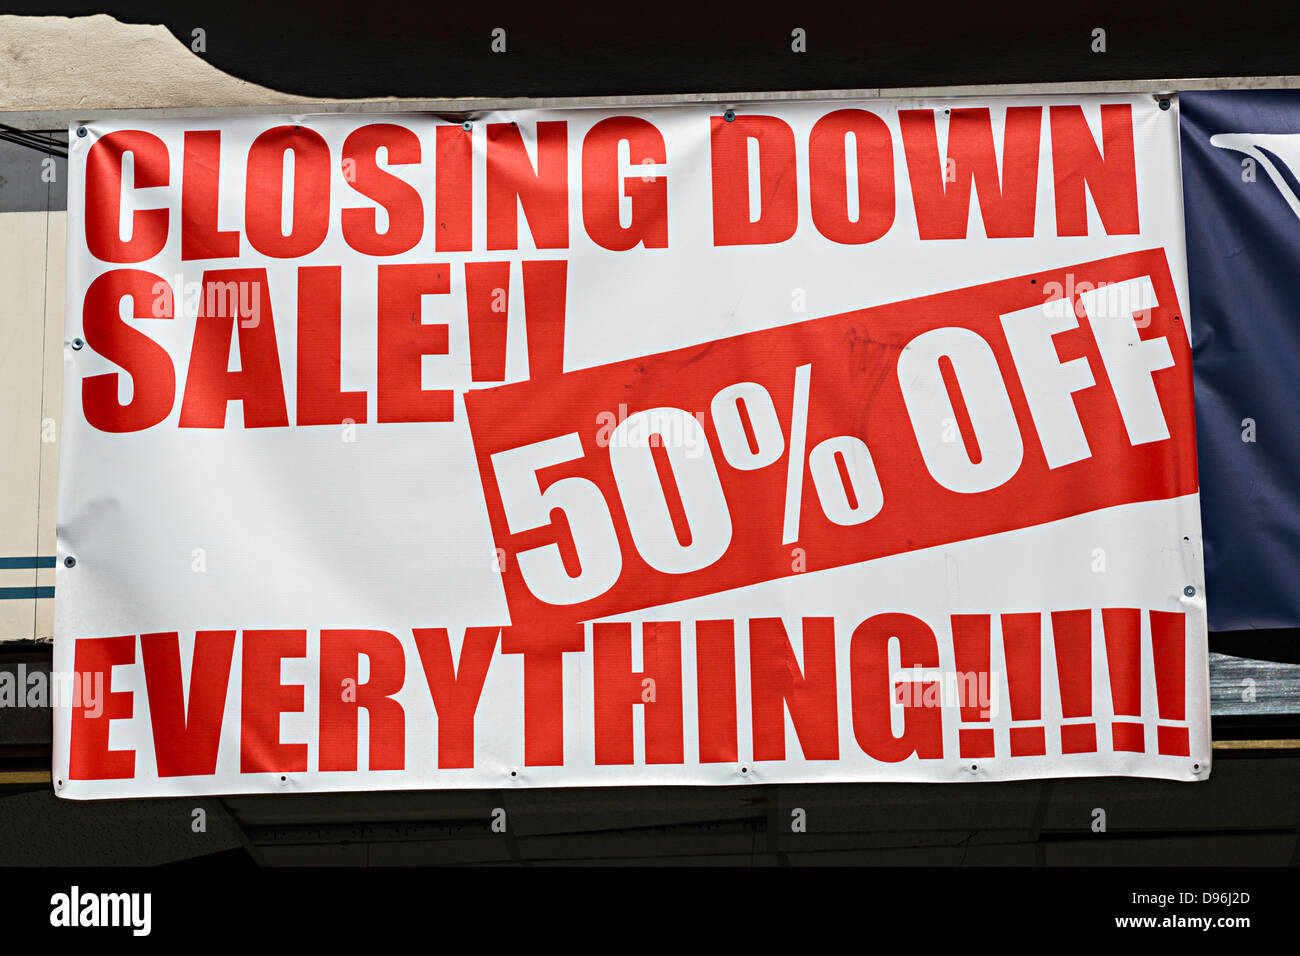 Closing down sale, 50% off everything, sign over shop window, UK - Stock Image